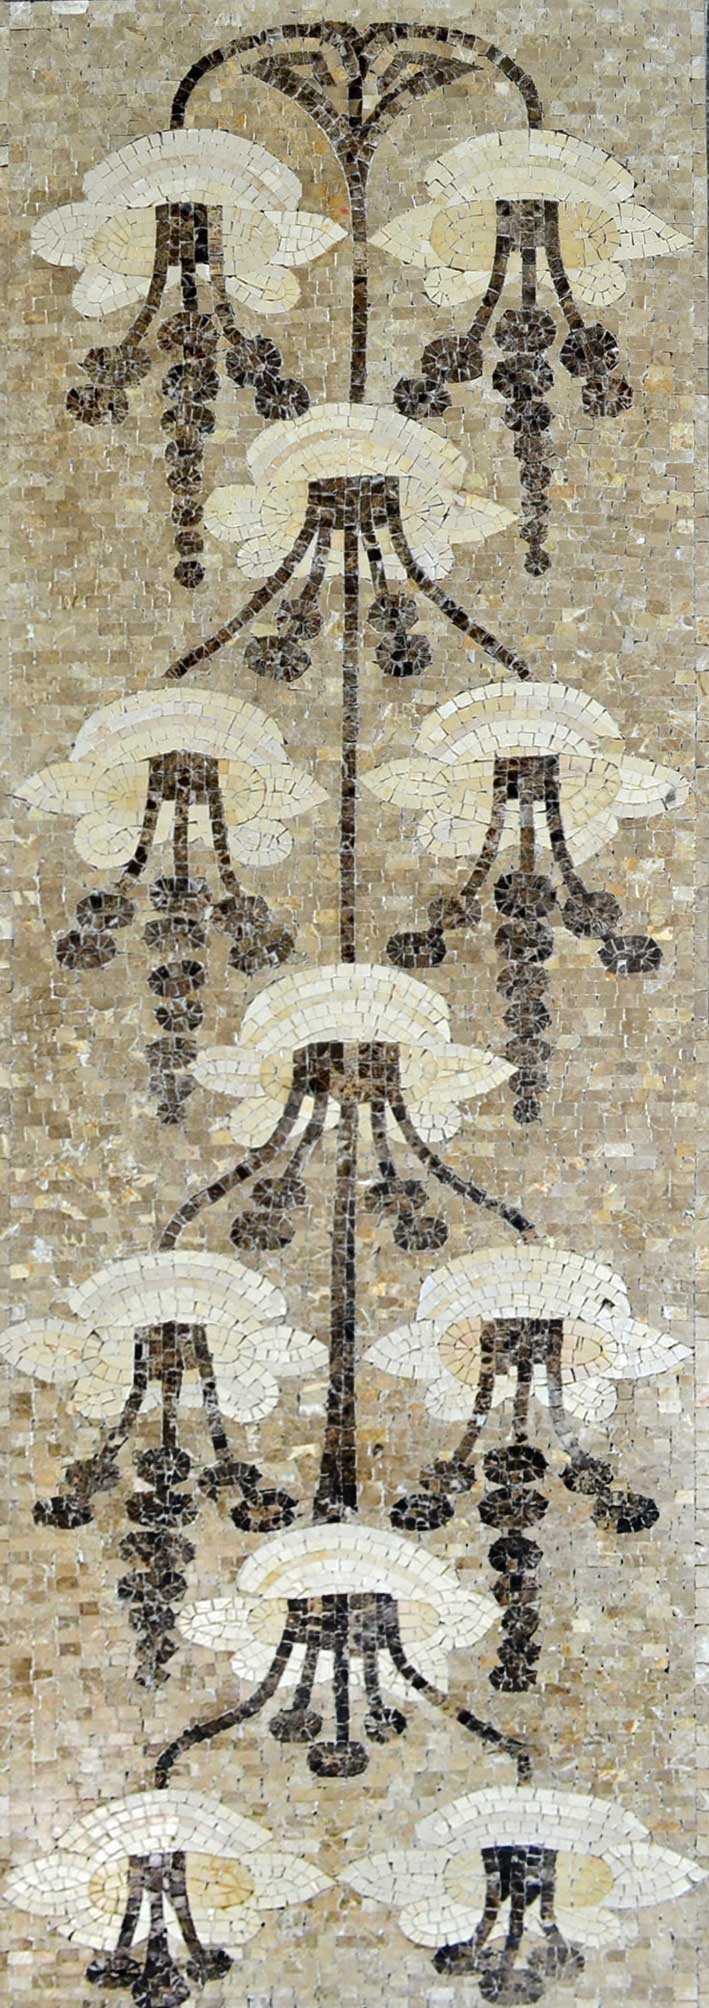 Marble Mosaic Art - Dangling Flowers